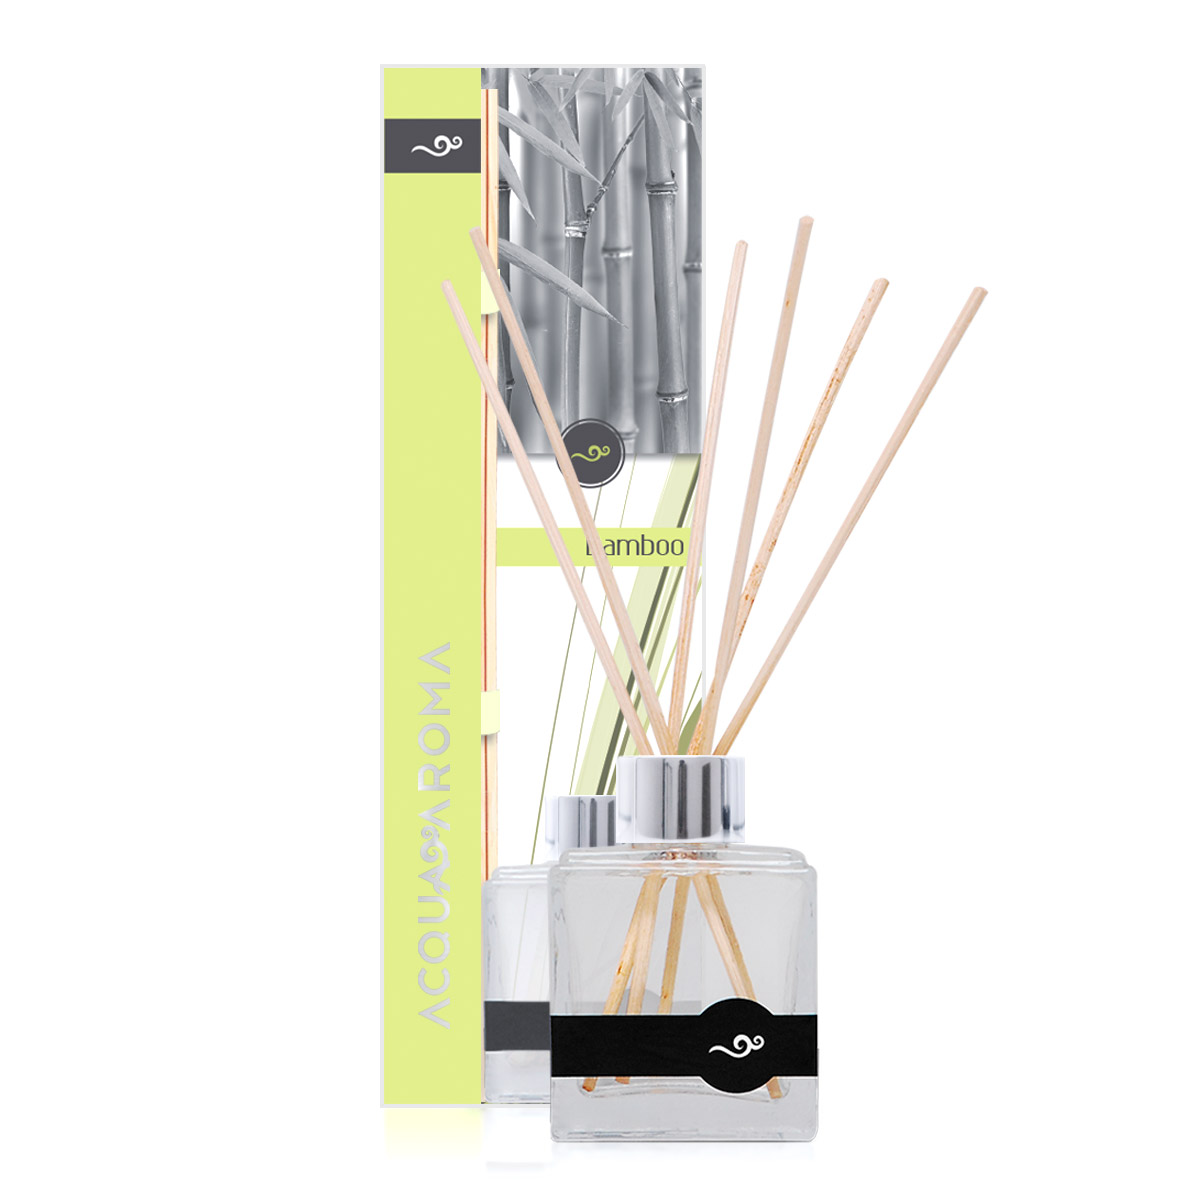 Product Reed Diffuser ~ Bamboo reed diffuser fl oz ml